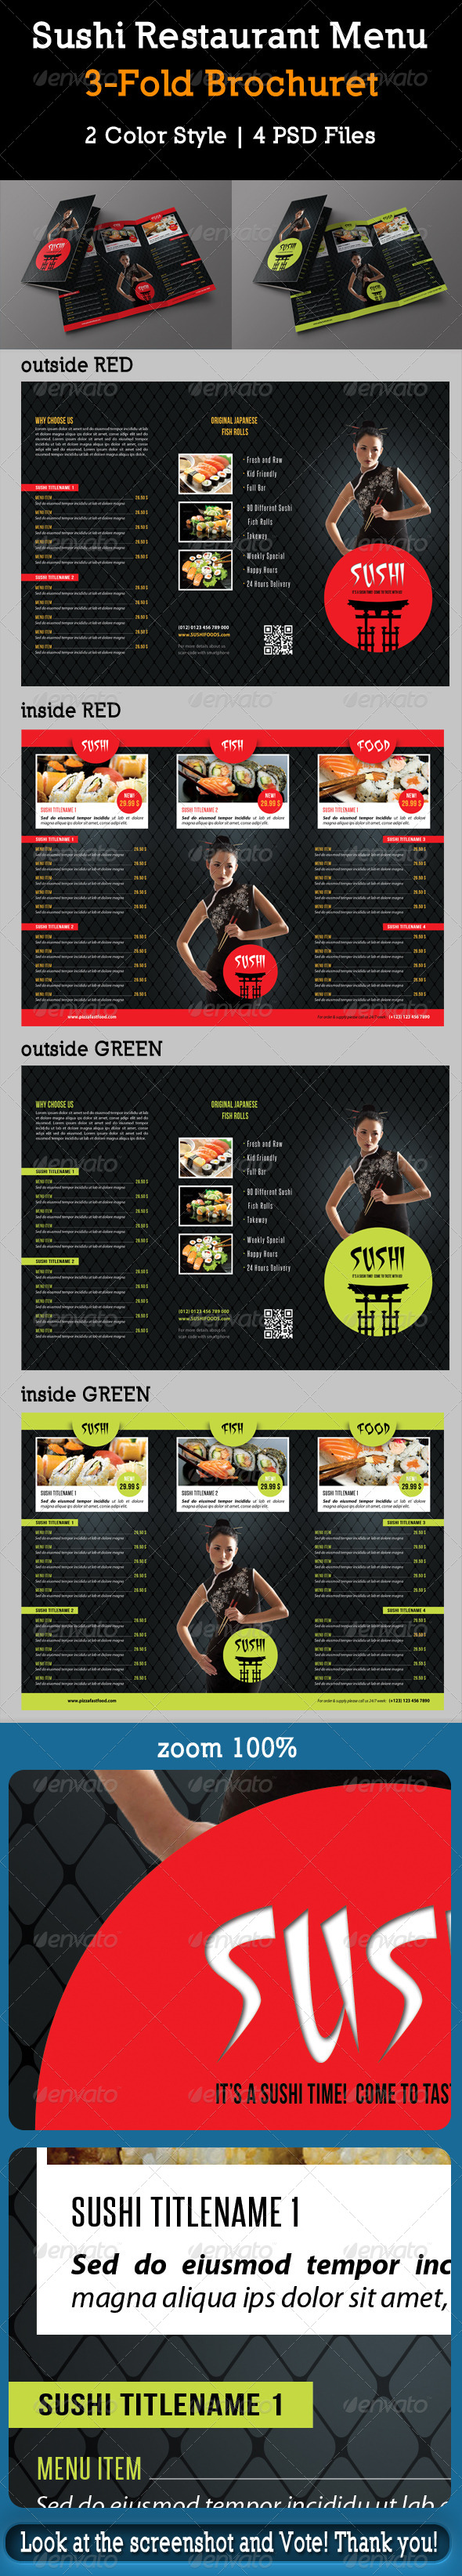 GraphicRiver Sushi Restaurant Menu 3-Fold Brochure 03 8430970